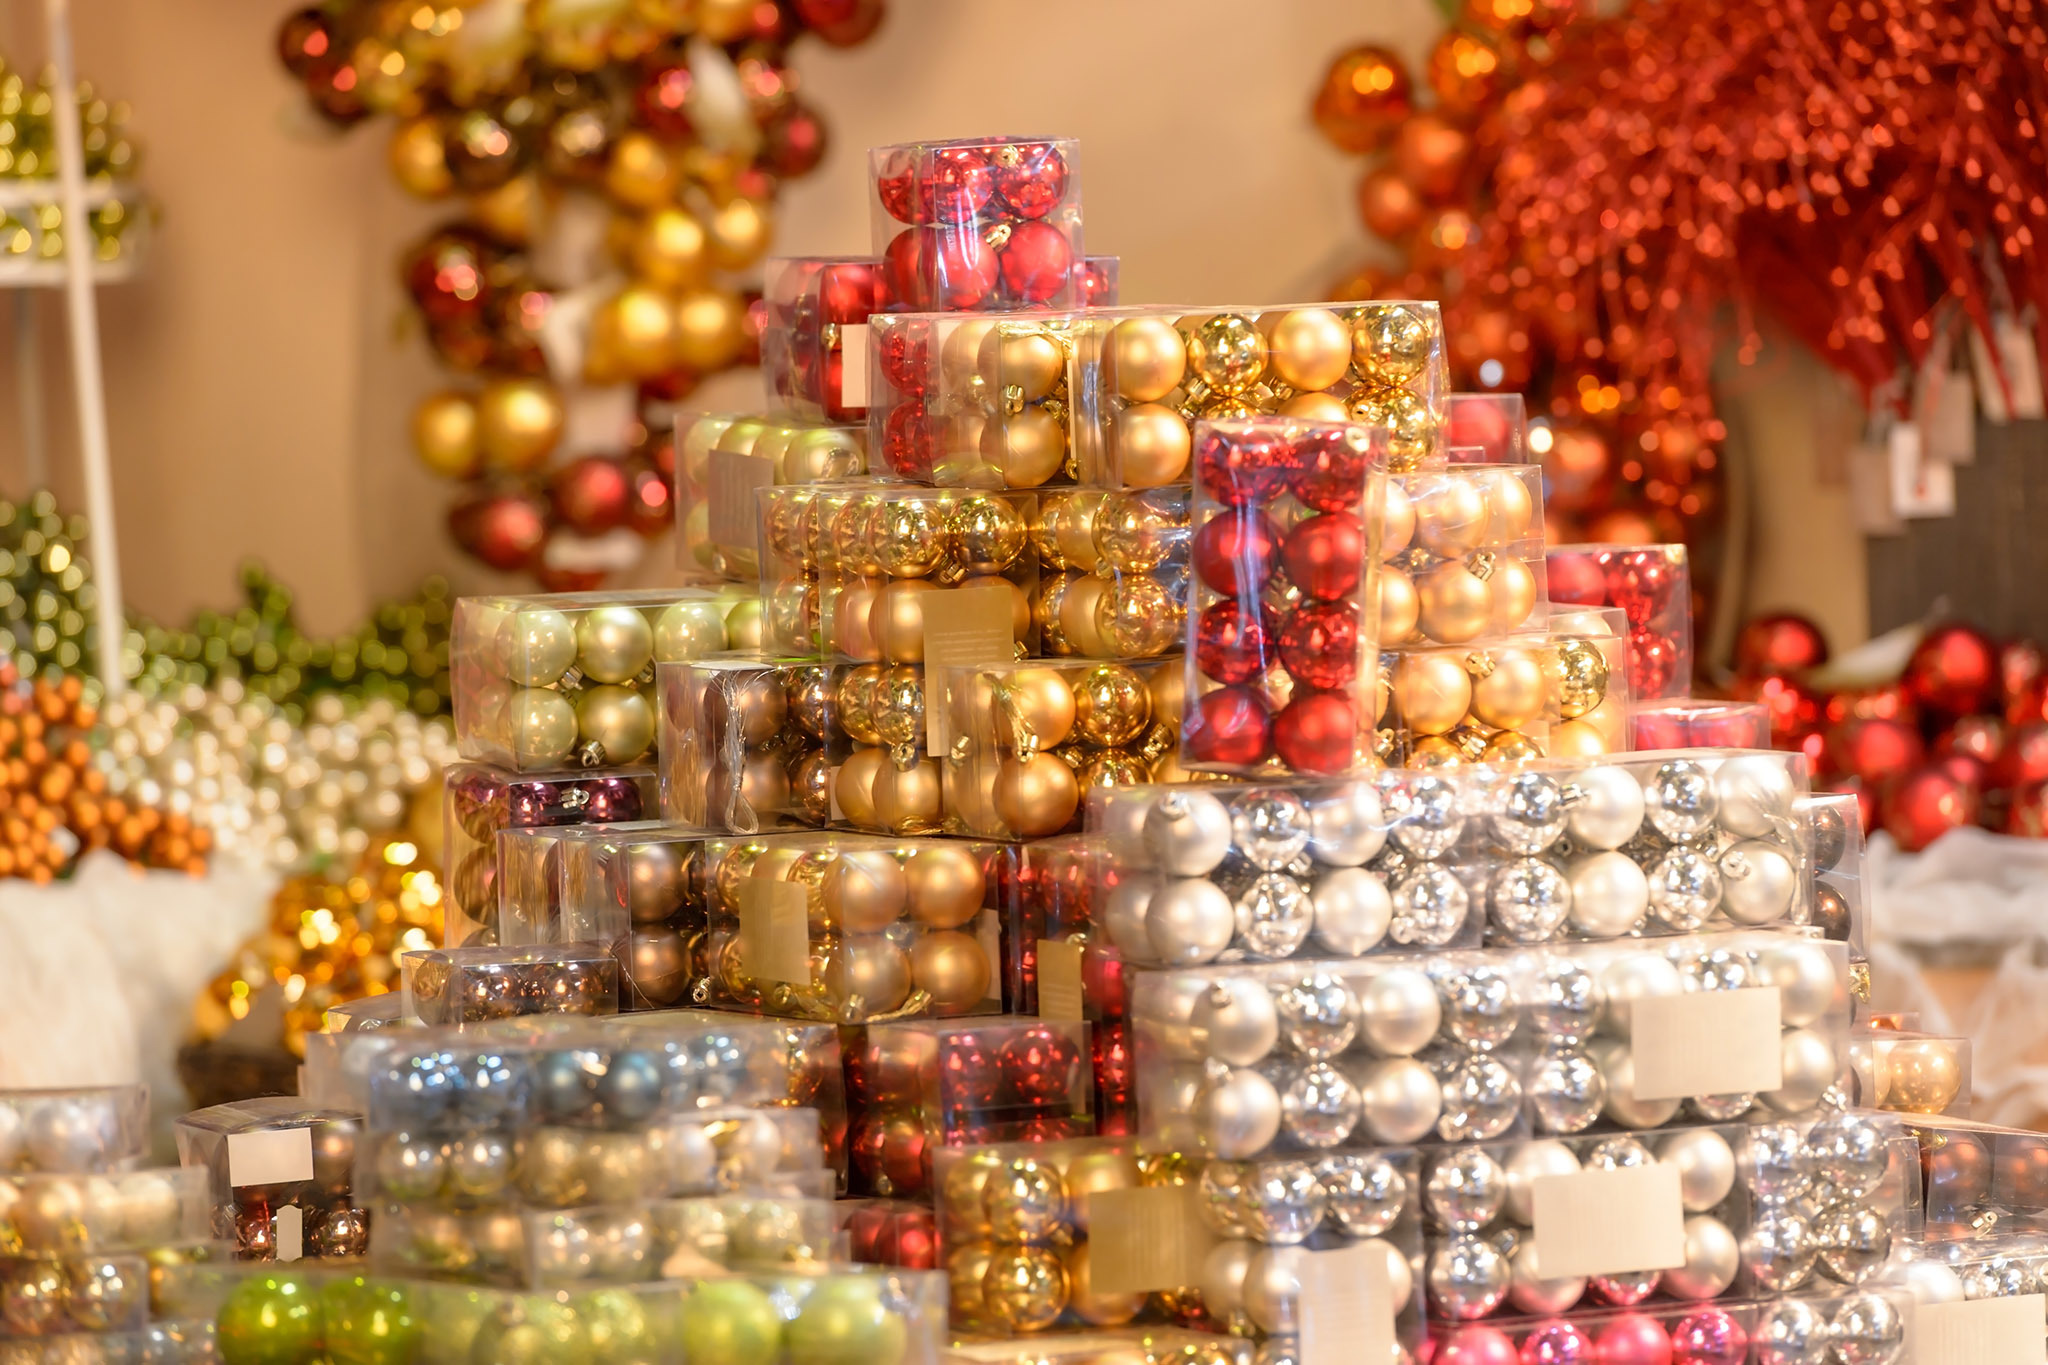 Best Place For Christmas Decorations Best Ornament Shops In Nyc For All Your Christmas Decoration Needs